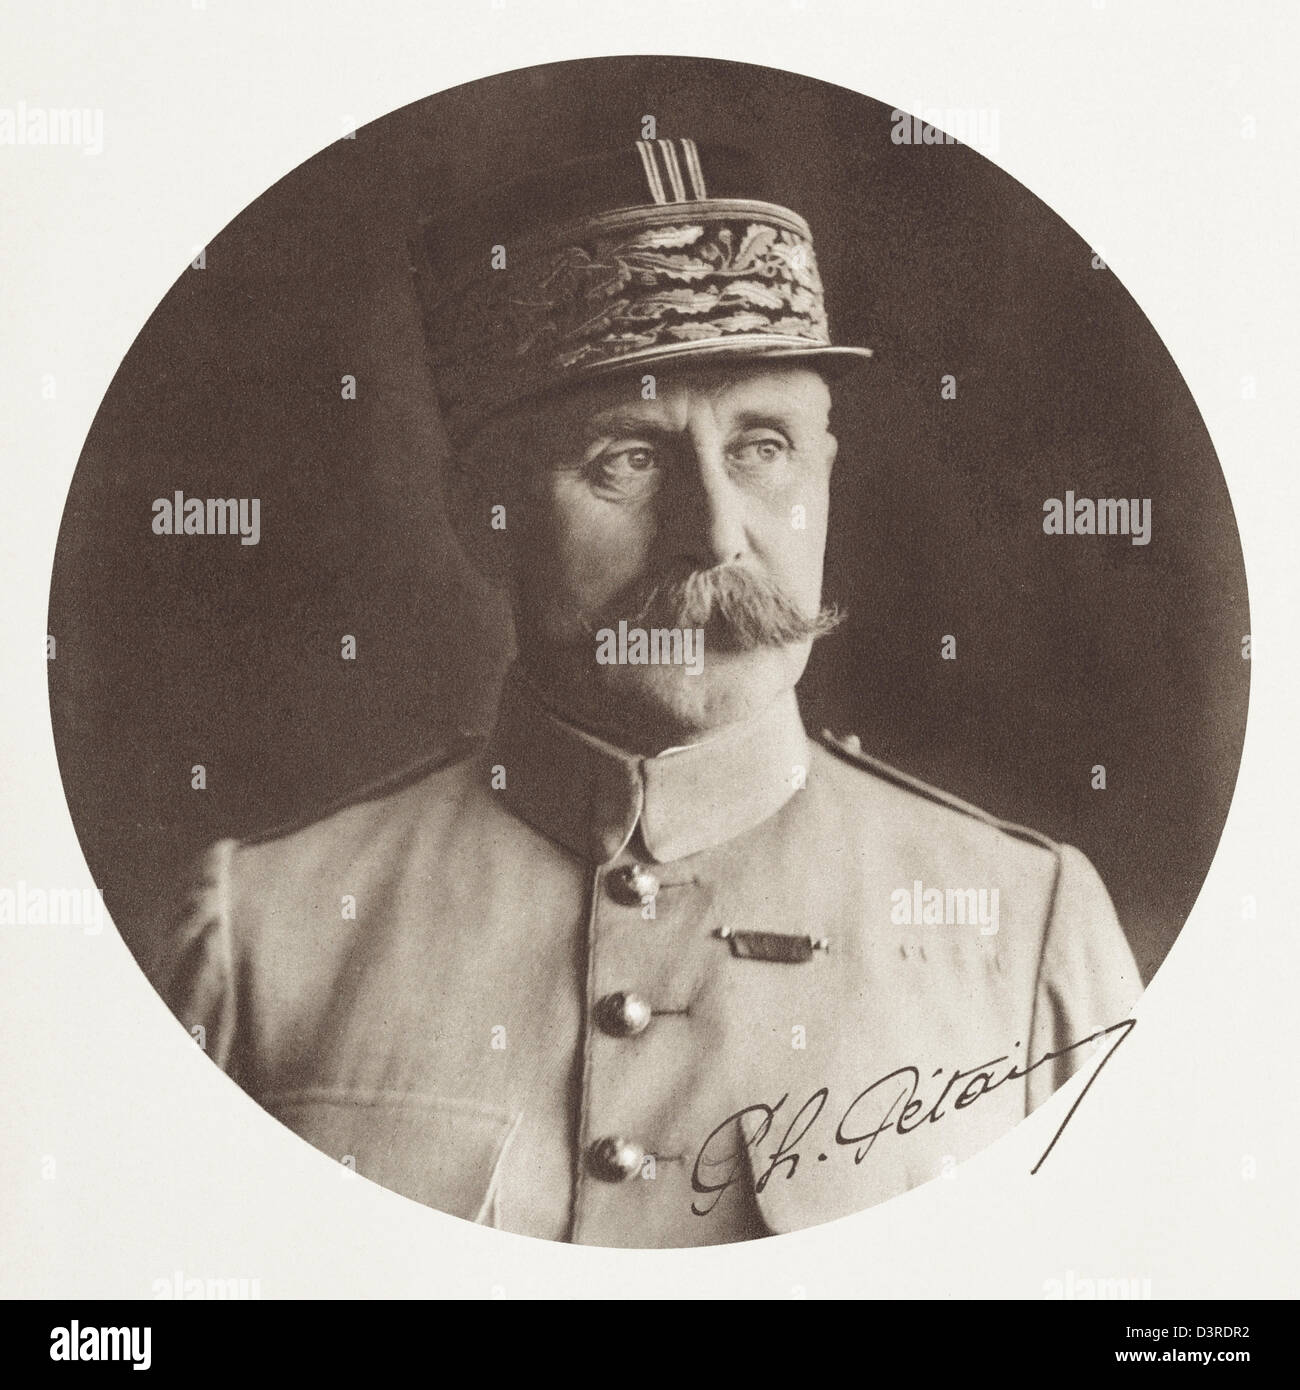 Philippe Petain, First World War General and President of France during the Second World War in the Vichy Government. - Stock Image